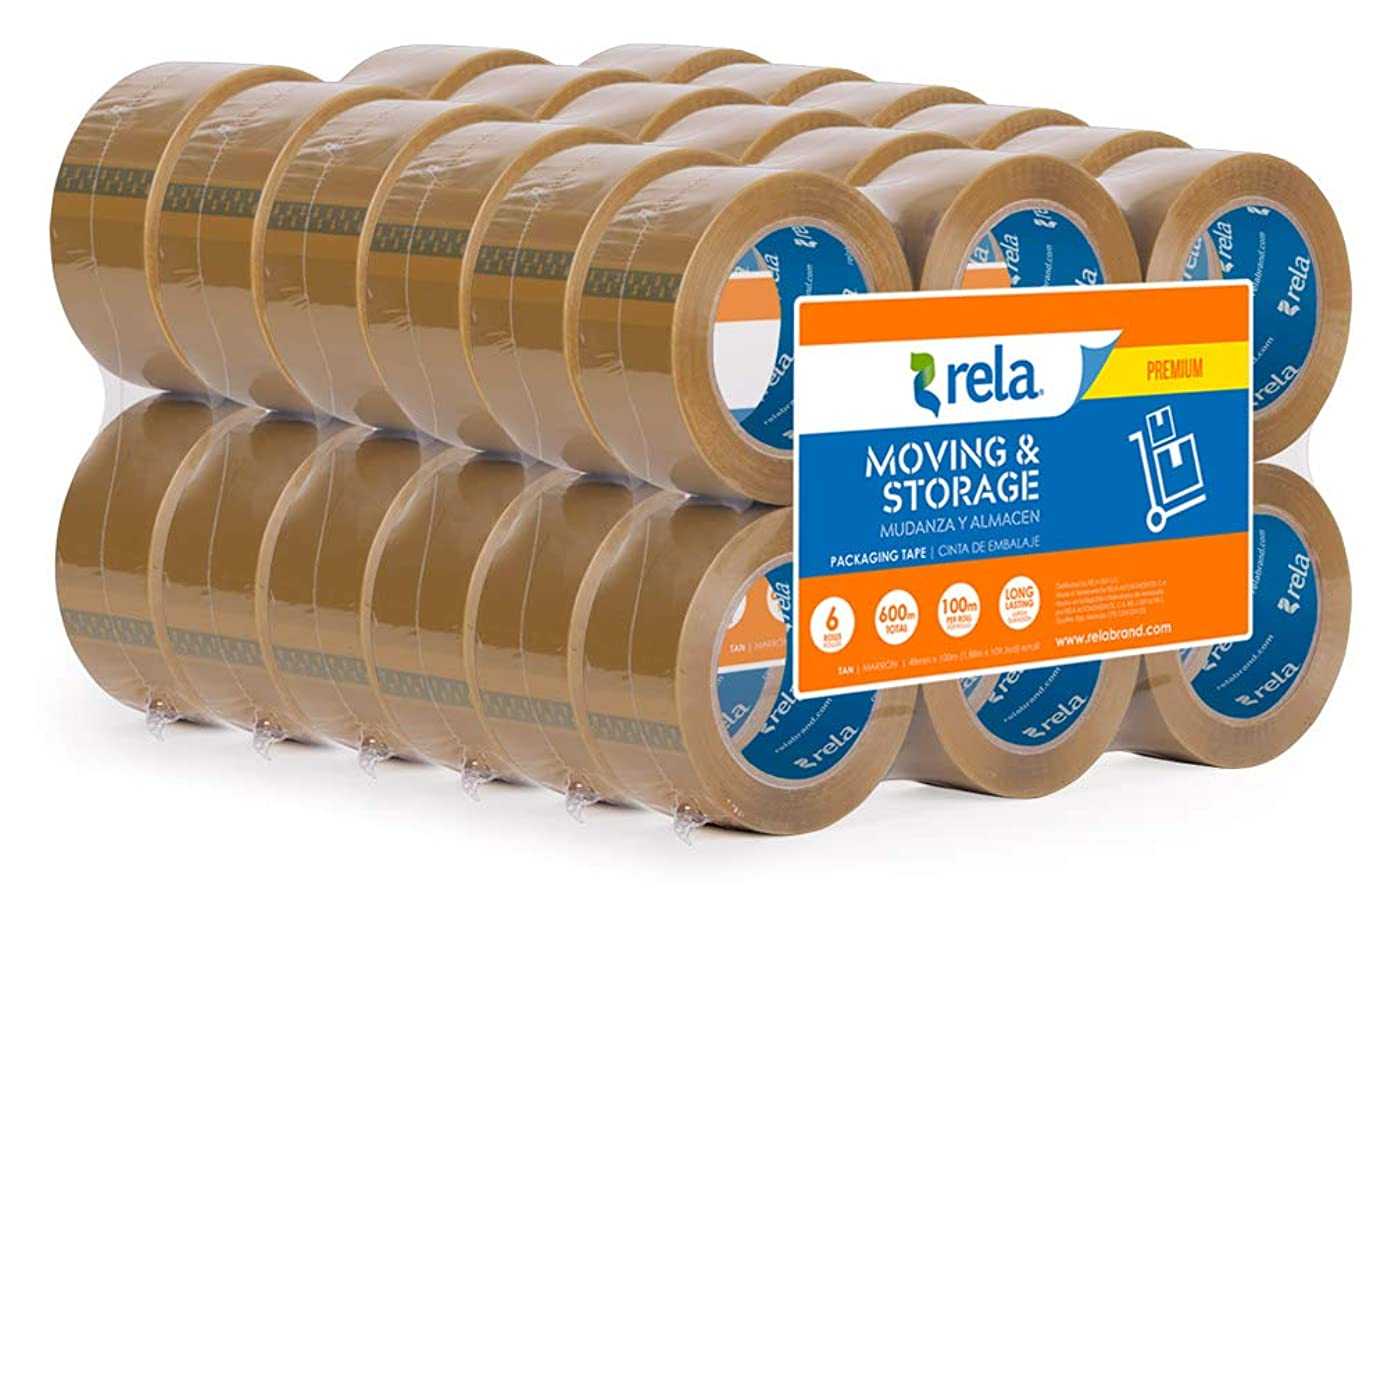 rela Moving & Storage Tan Premium Tape - (109.3 Yards x 1.88 Inch) Heavy Duty Premium Sealing Adhesive for Moving and Storage (Tan, 2